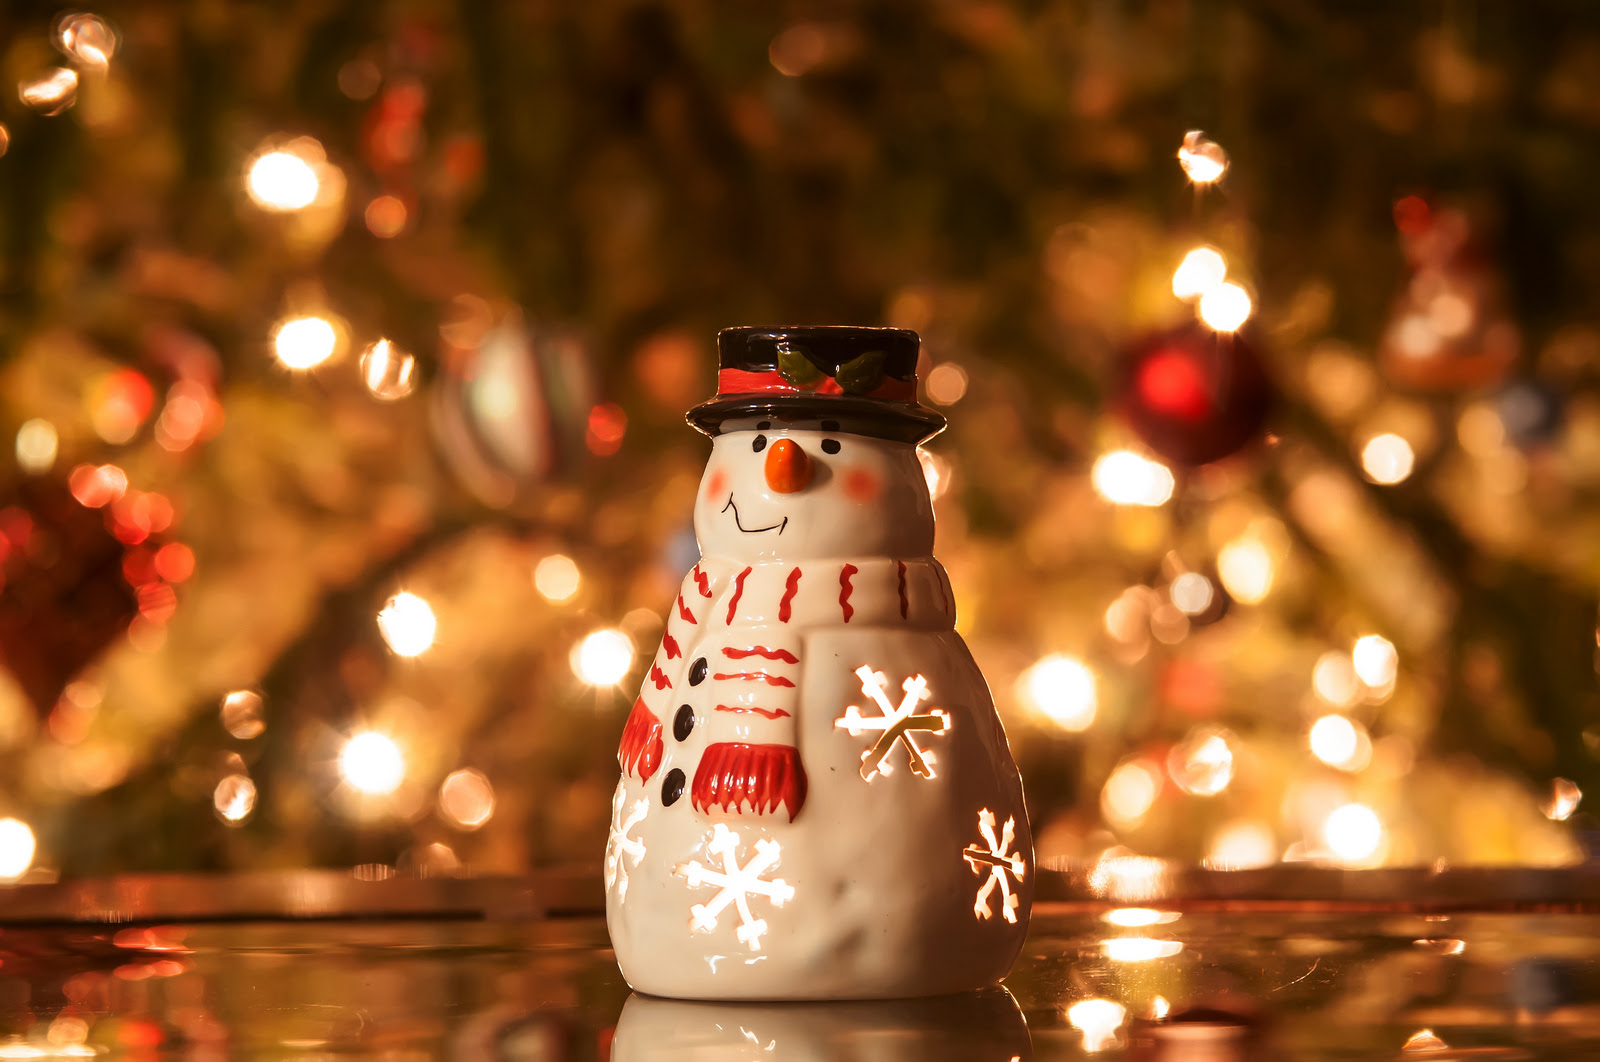 Christmas_candle_snowman_with_lights.jpg